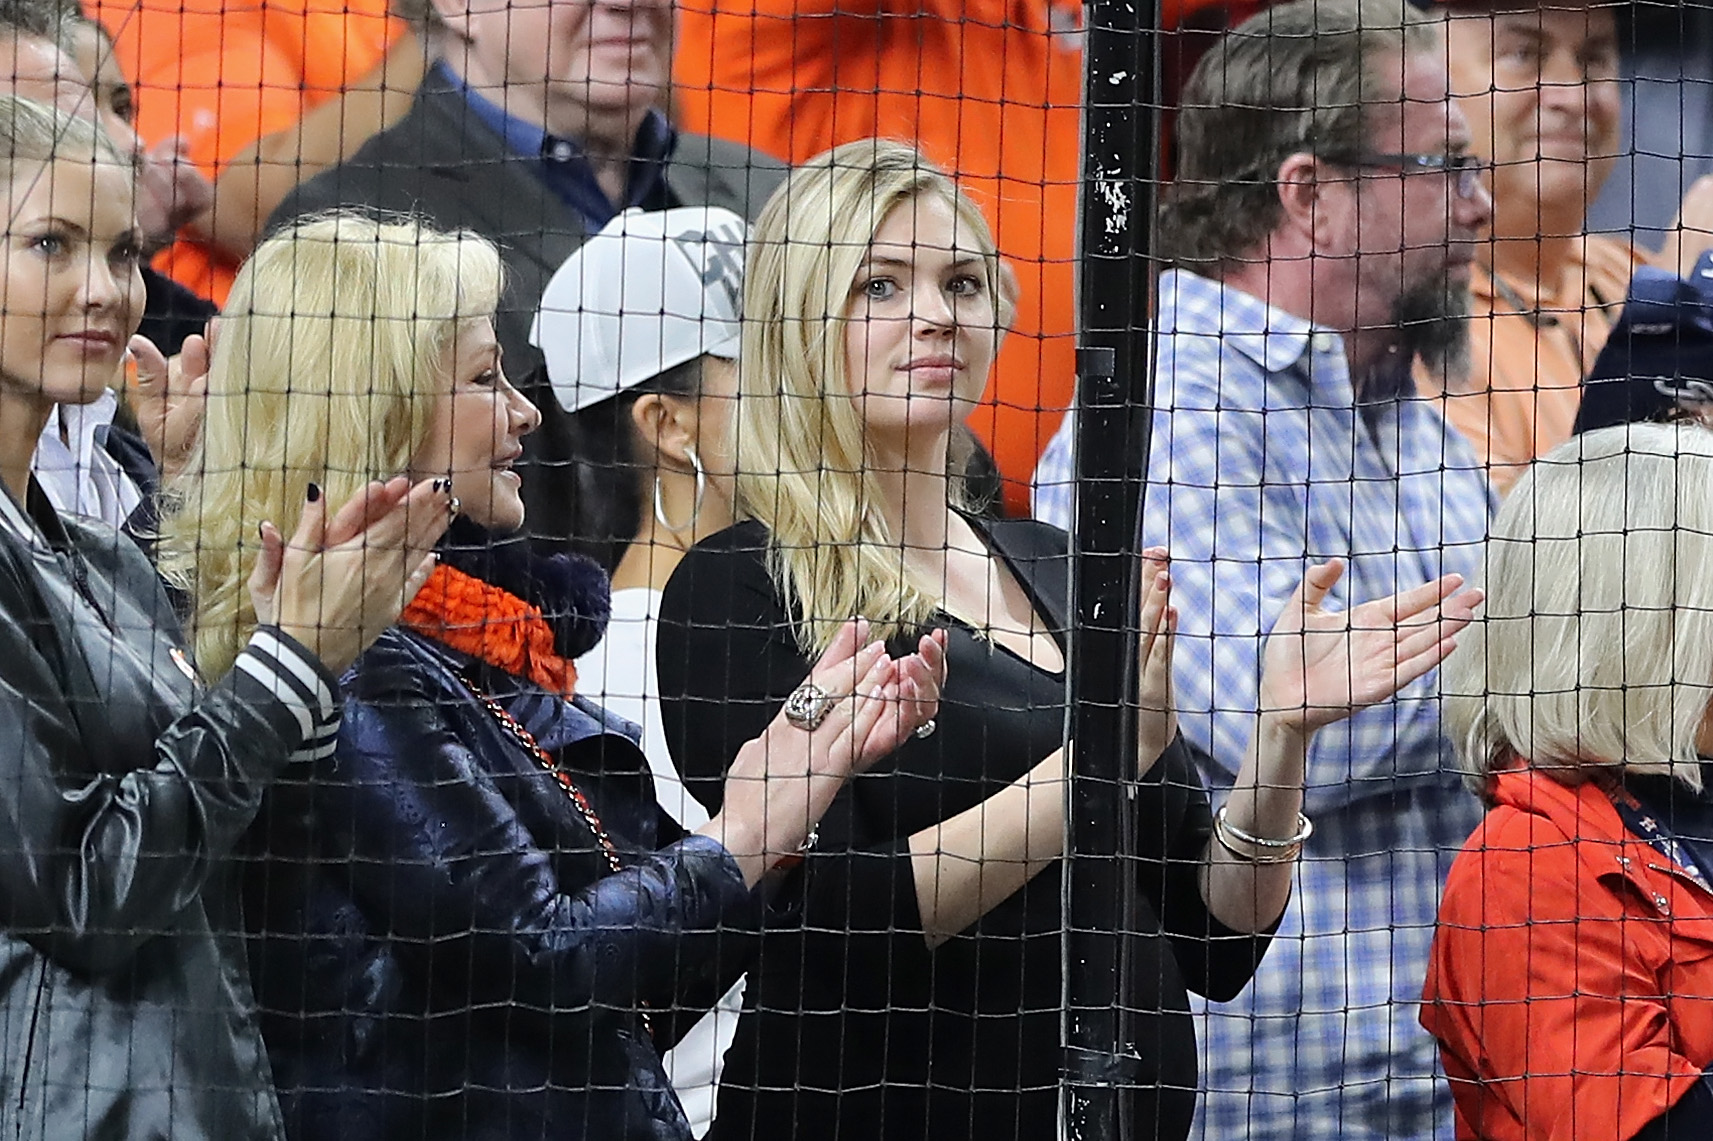 Kate Upton Rips MLB, Umpires for Questionable Call in Astros Game